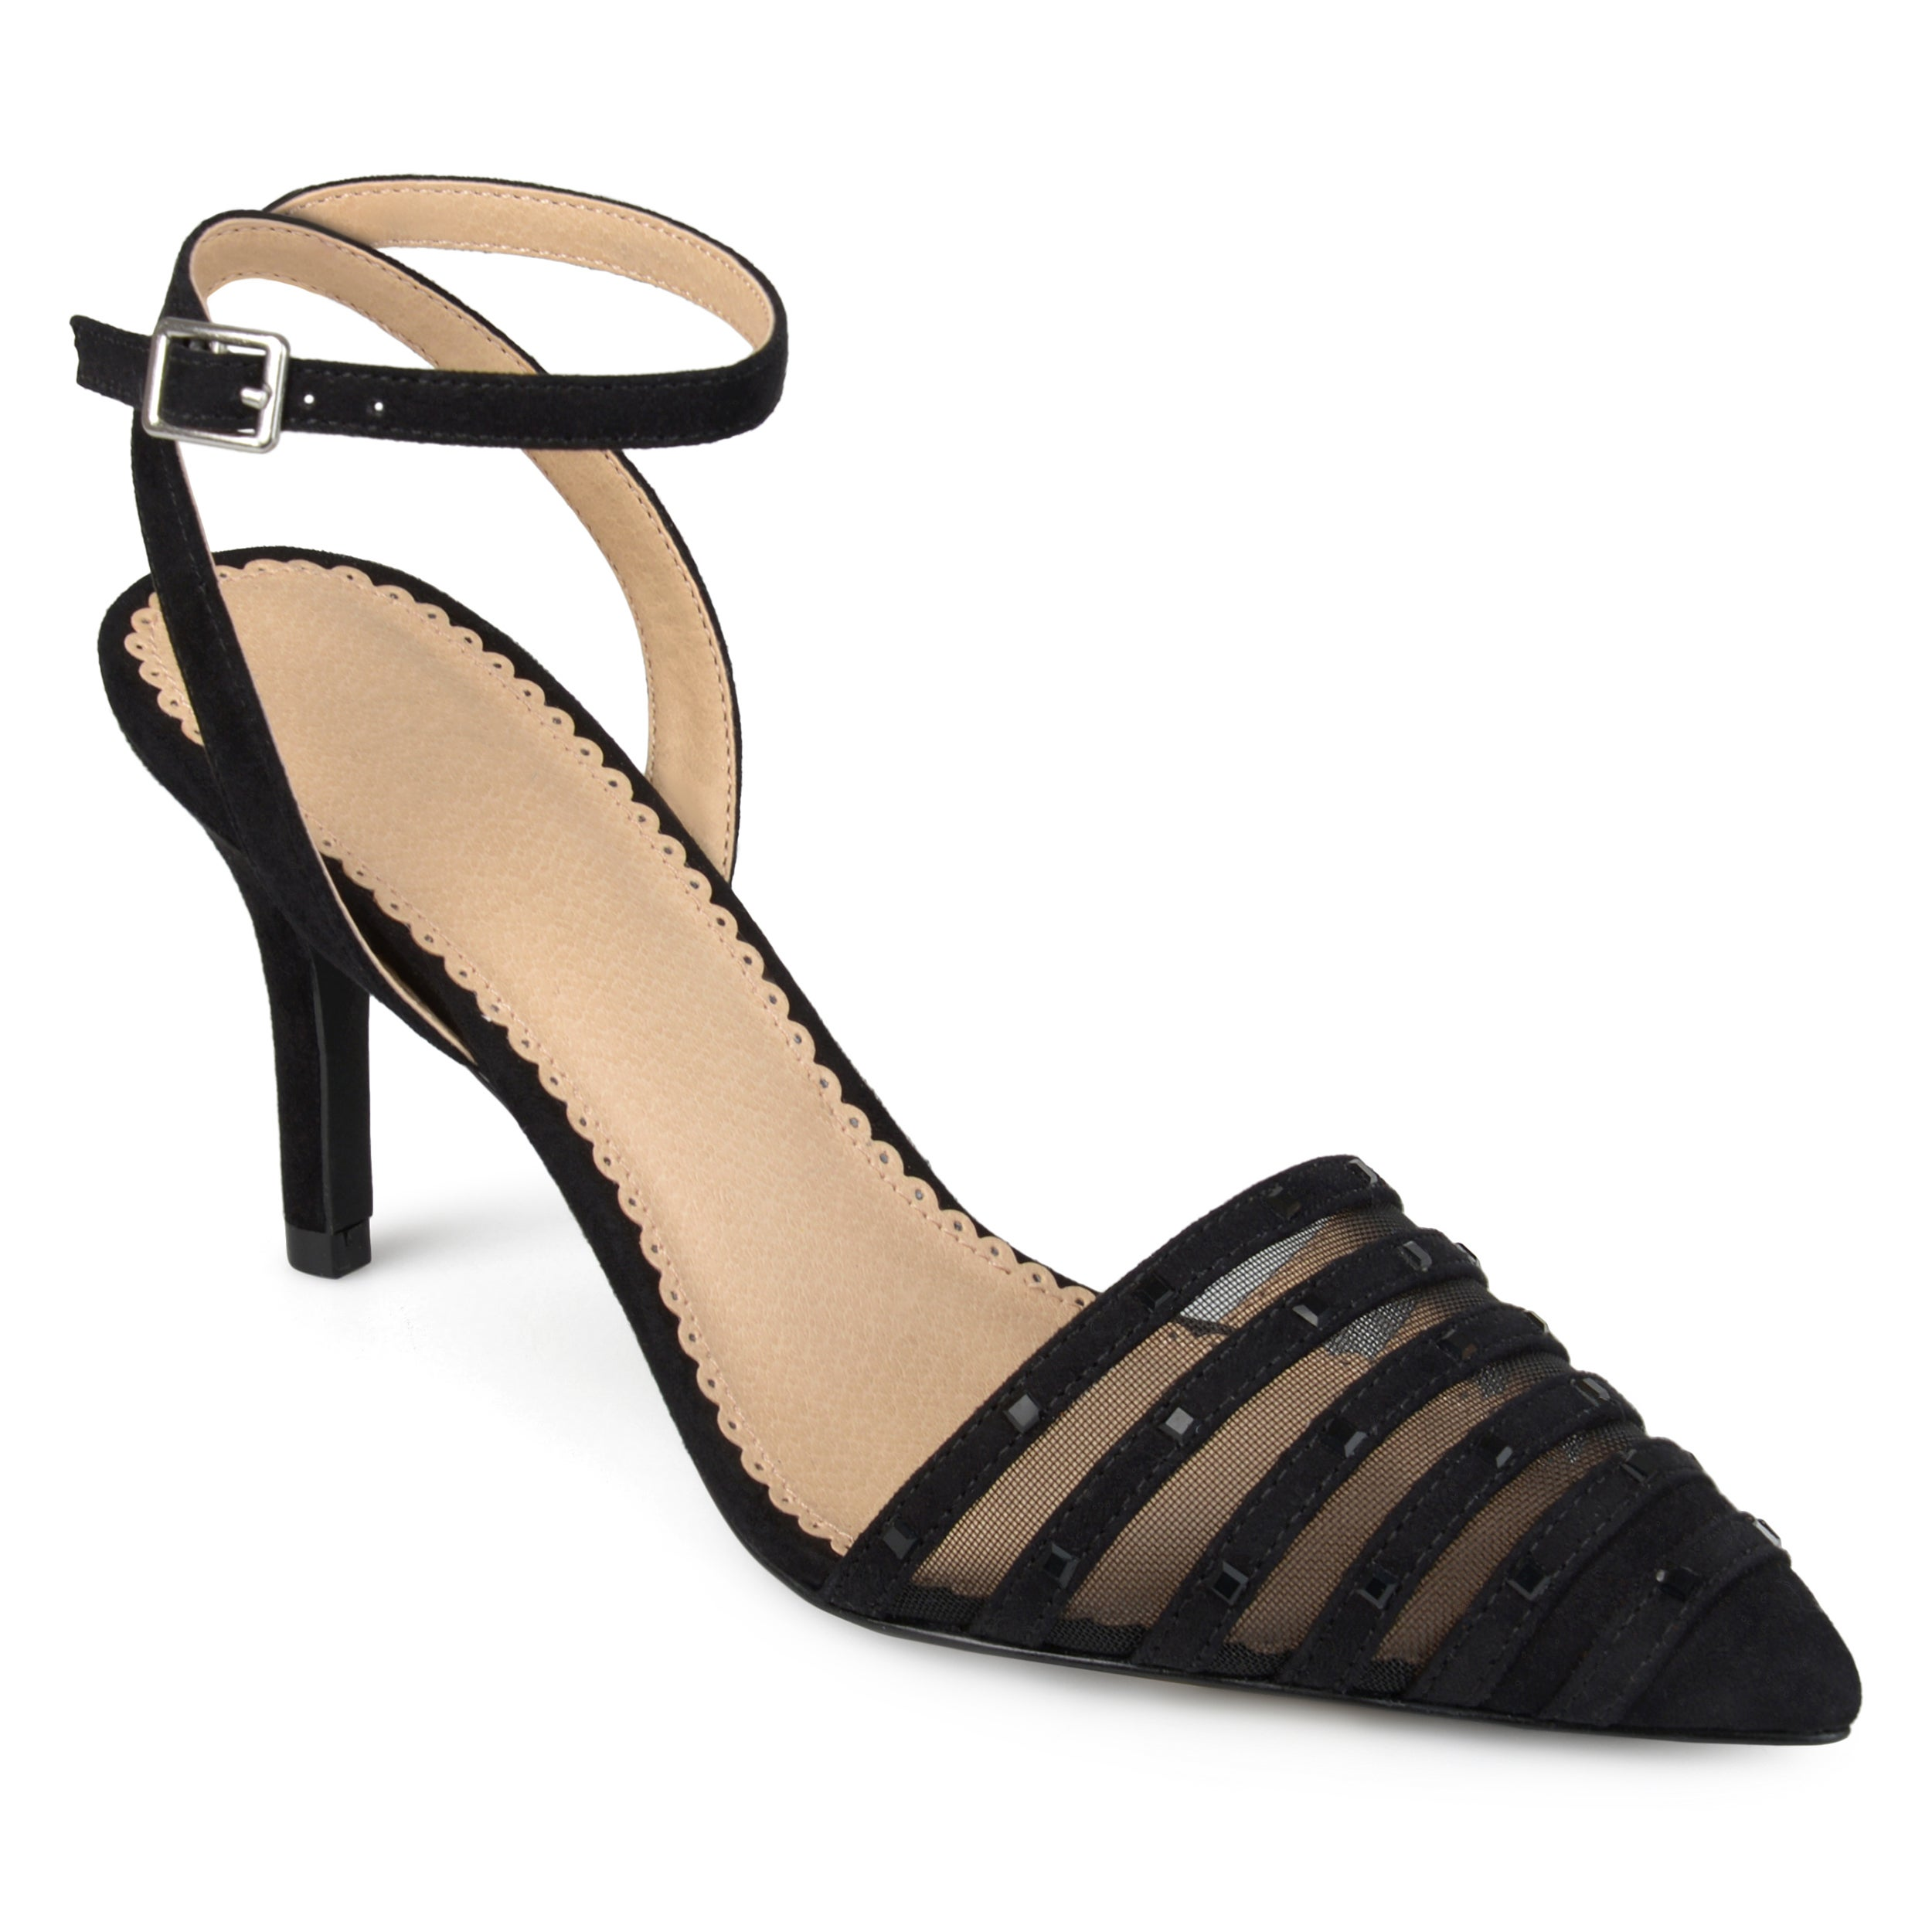 free shipping 2014 unisex low shipping online Journee Collection Meera ... Women's High Heels cheap price outlet sale shop for sale online explore cheap online Gmpsj